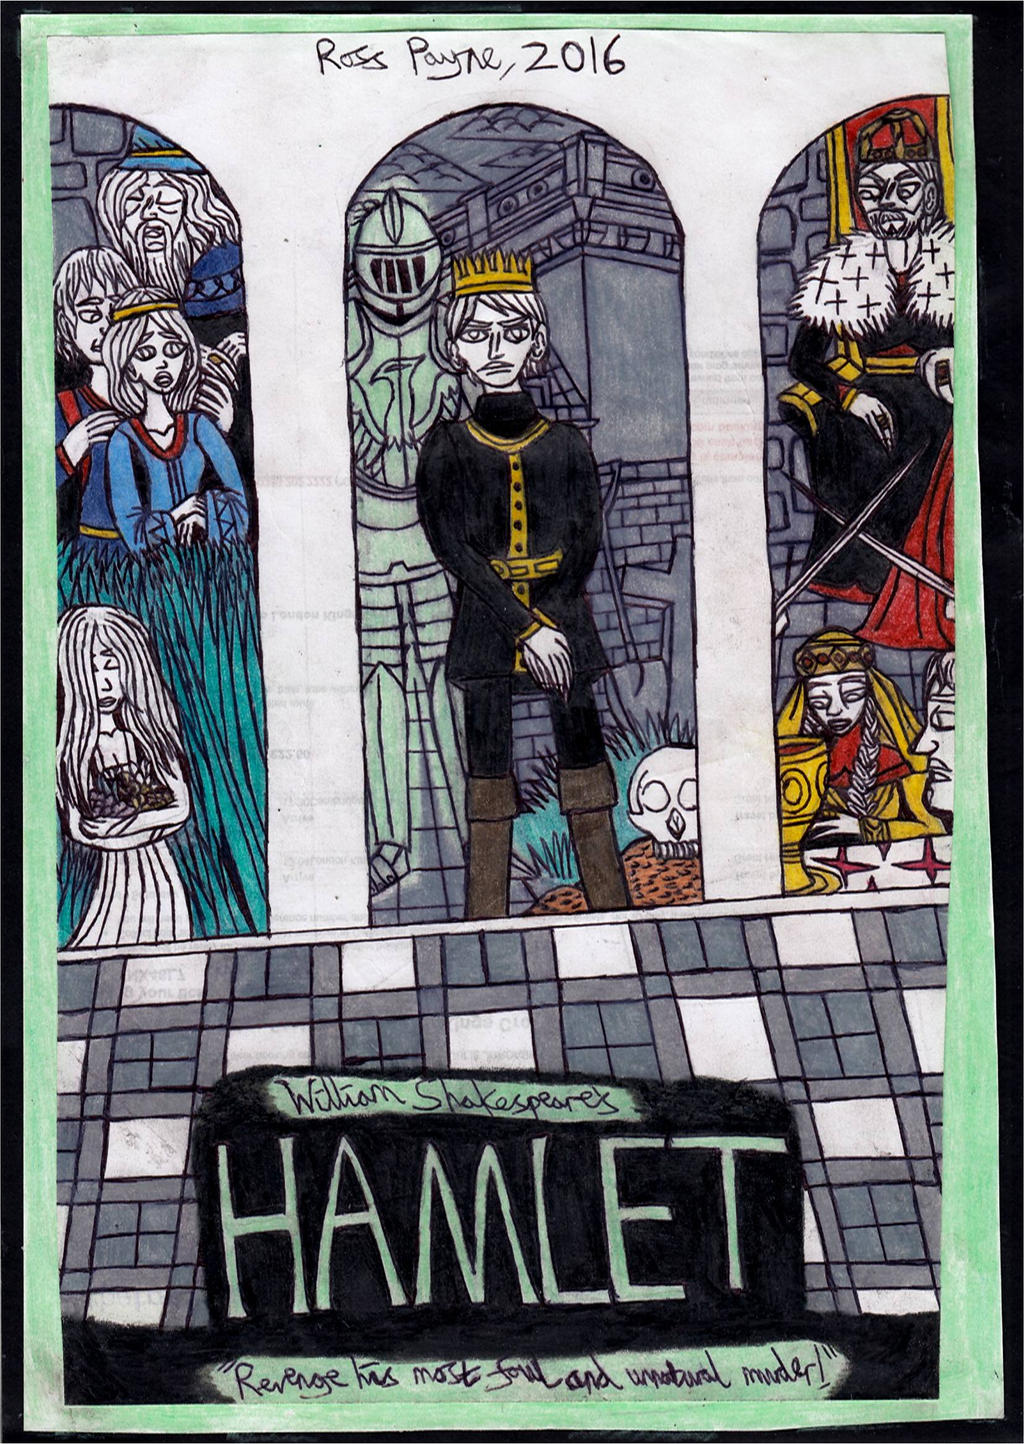 the characters of hamlet claudius and laertes in the play hamlet by william shakespeare Hamlet, by william shakespeare characters of the play claudius, king of denmark hamlet, son to the late, and nephew to the present king polonius, lord chamberlain horatio, friend to hamlet laertes, son to polonius.